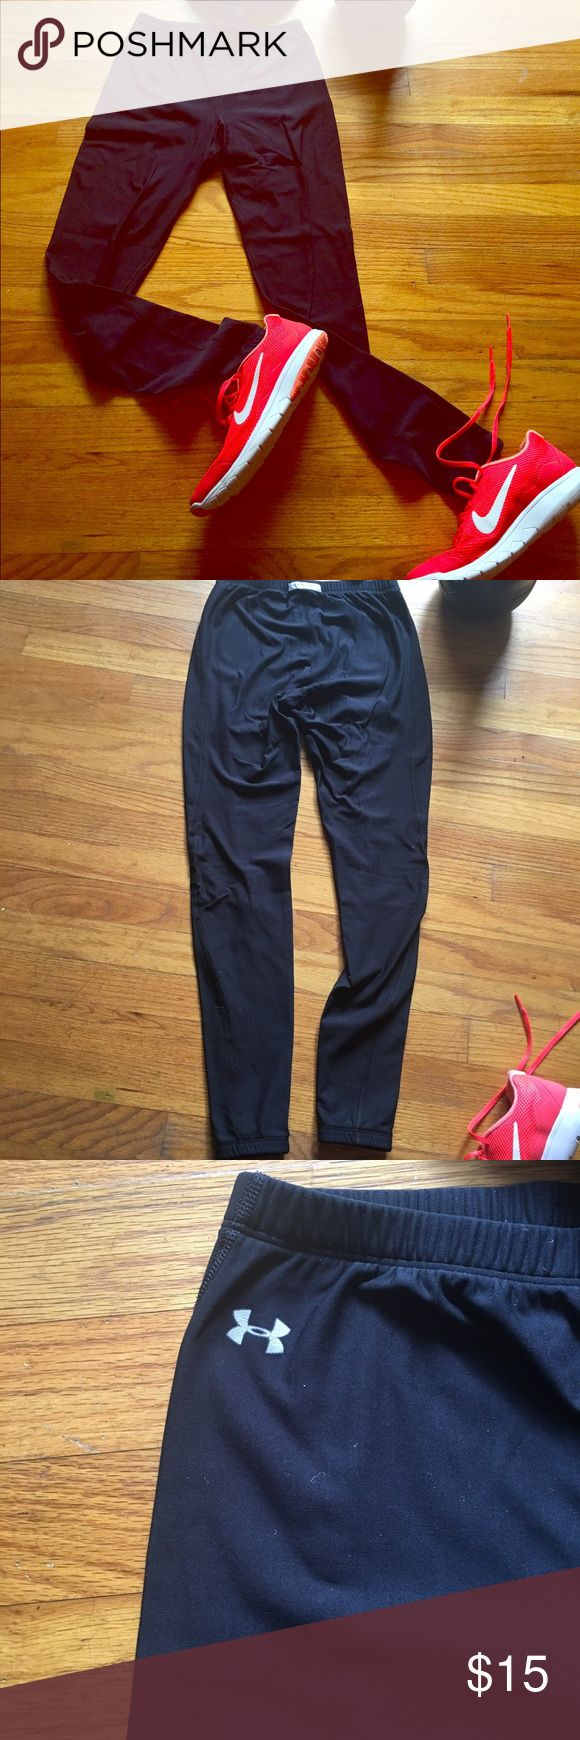 Under Armour Leggings   Medium UA tech leggings in a medium. Elastic around ankles to keep everything in place. Excellent condition. Perfect for cold weather workouts. Under Armour Pants Leggings